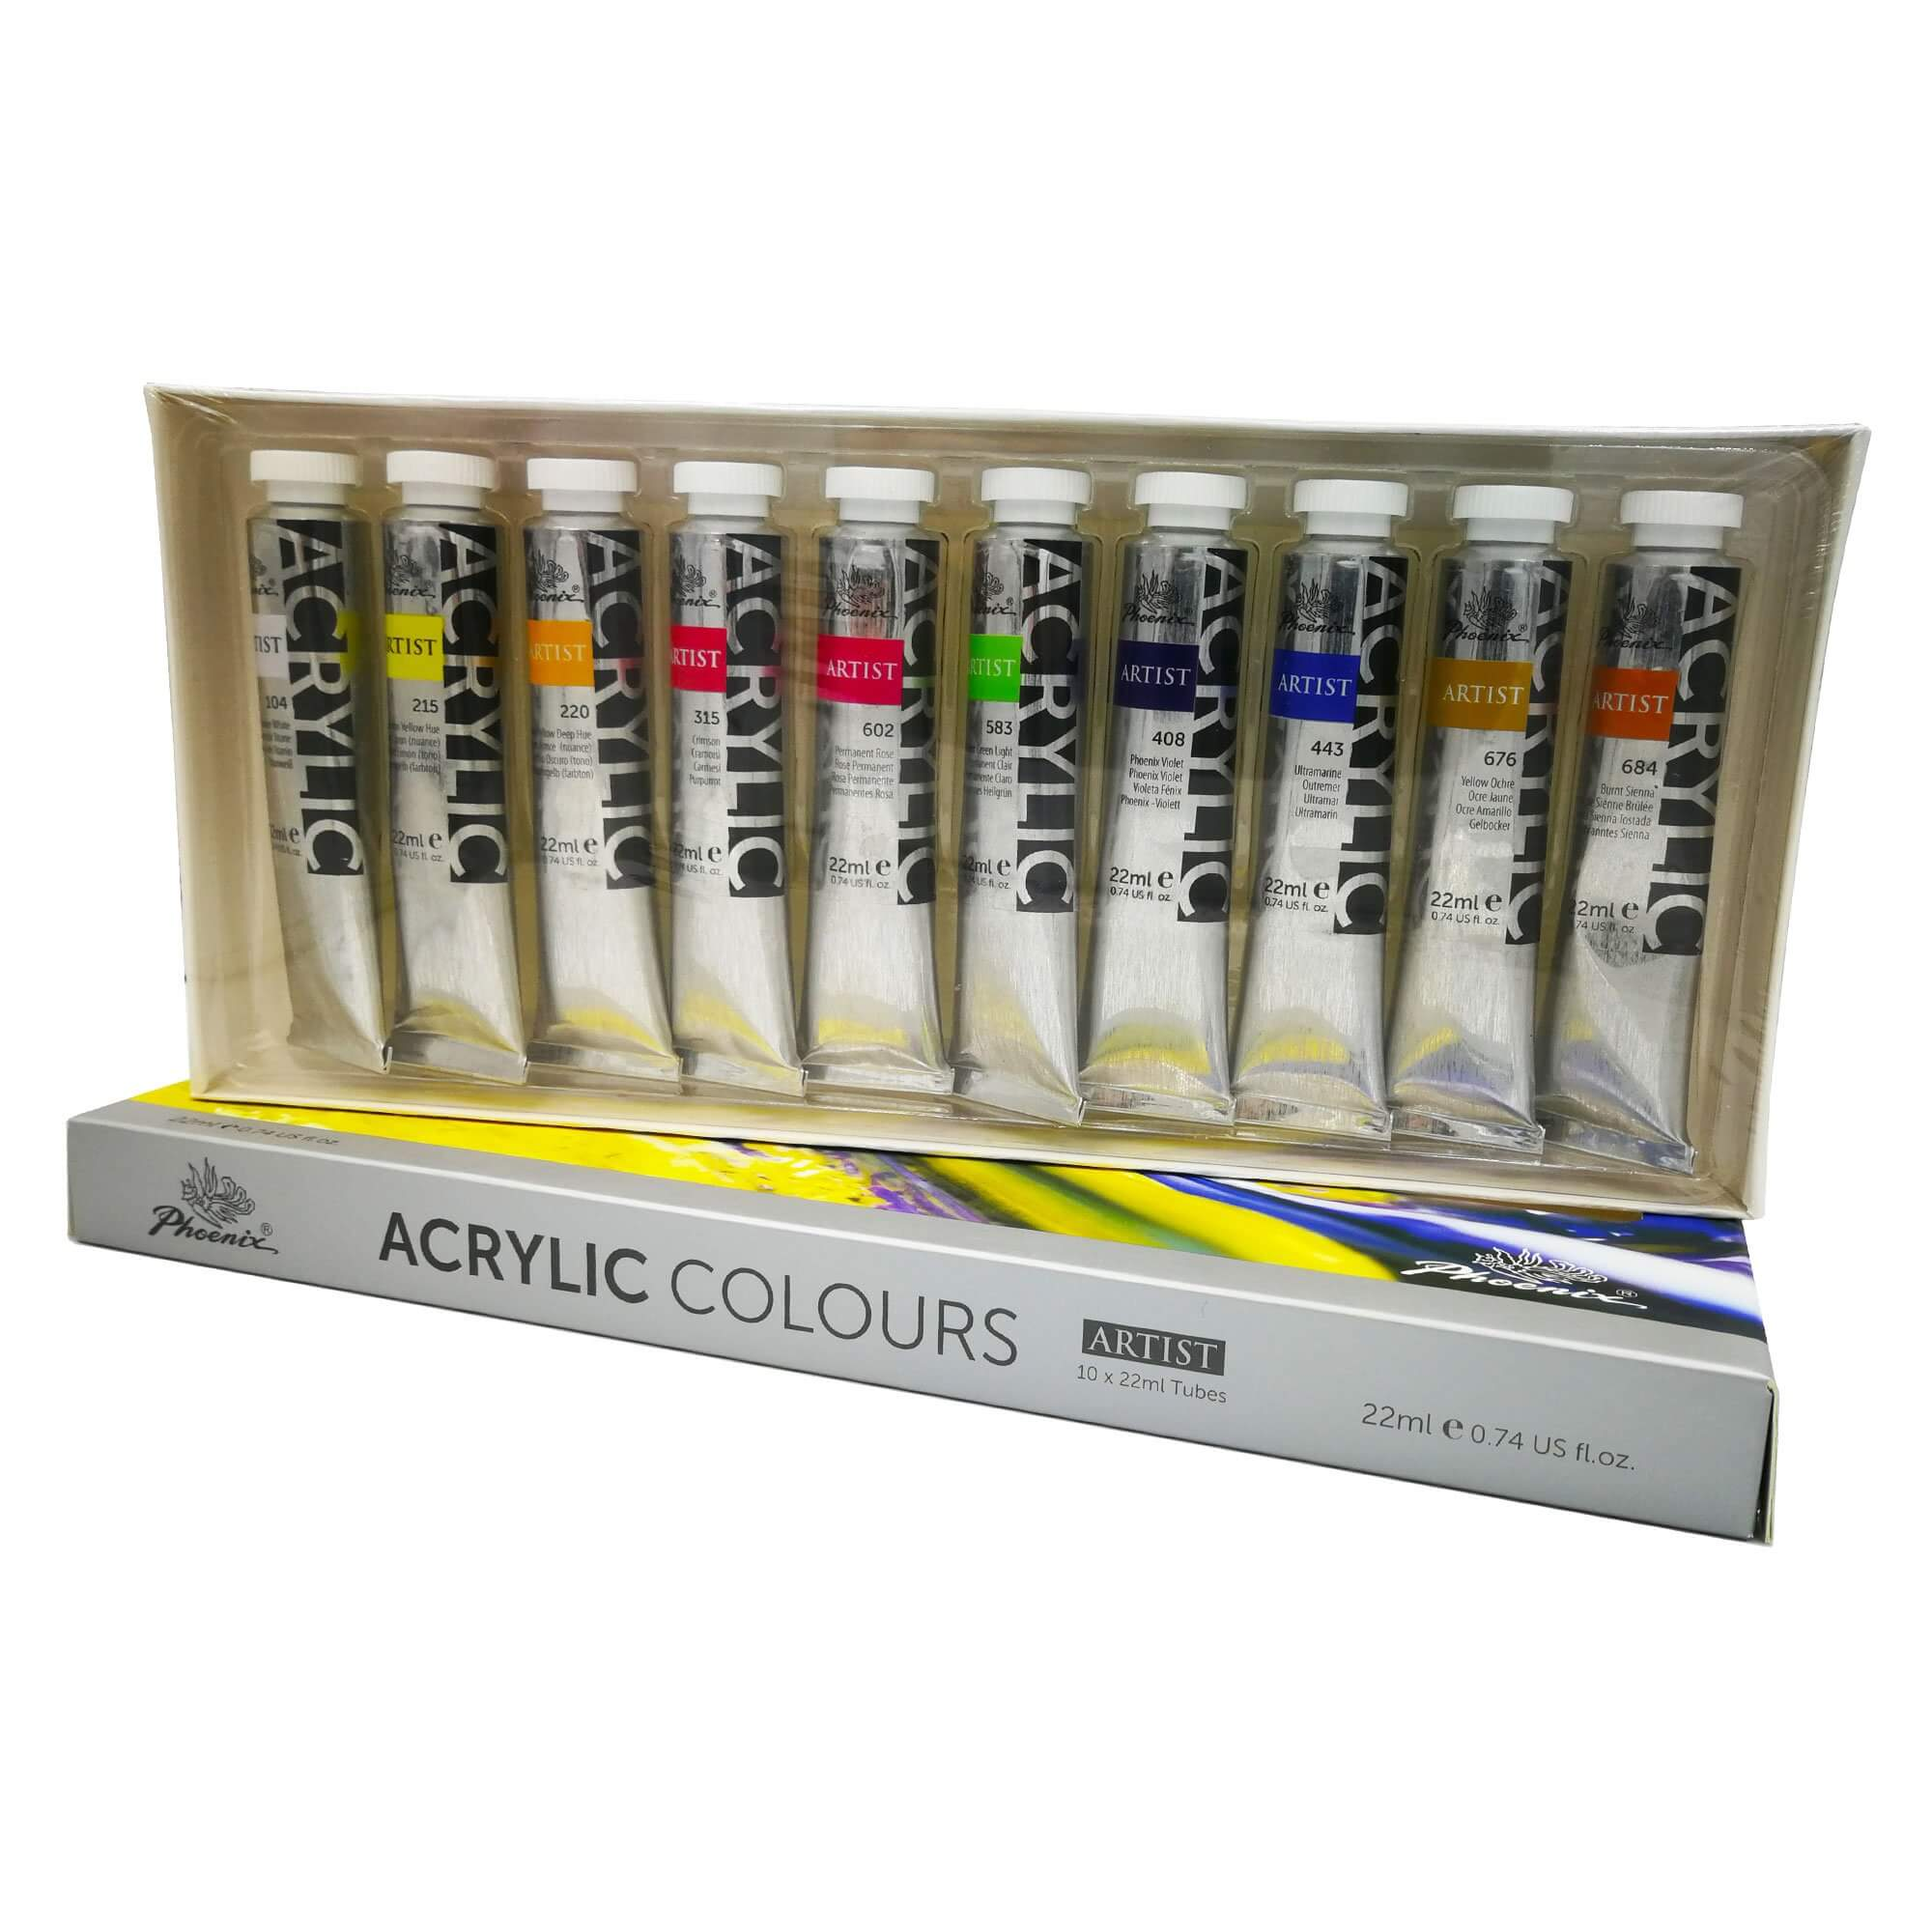 ART essentials - Wooden Box Acrylic Paint Set - 35 Piece Set